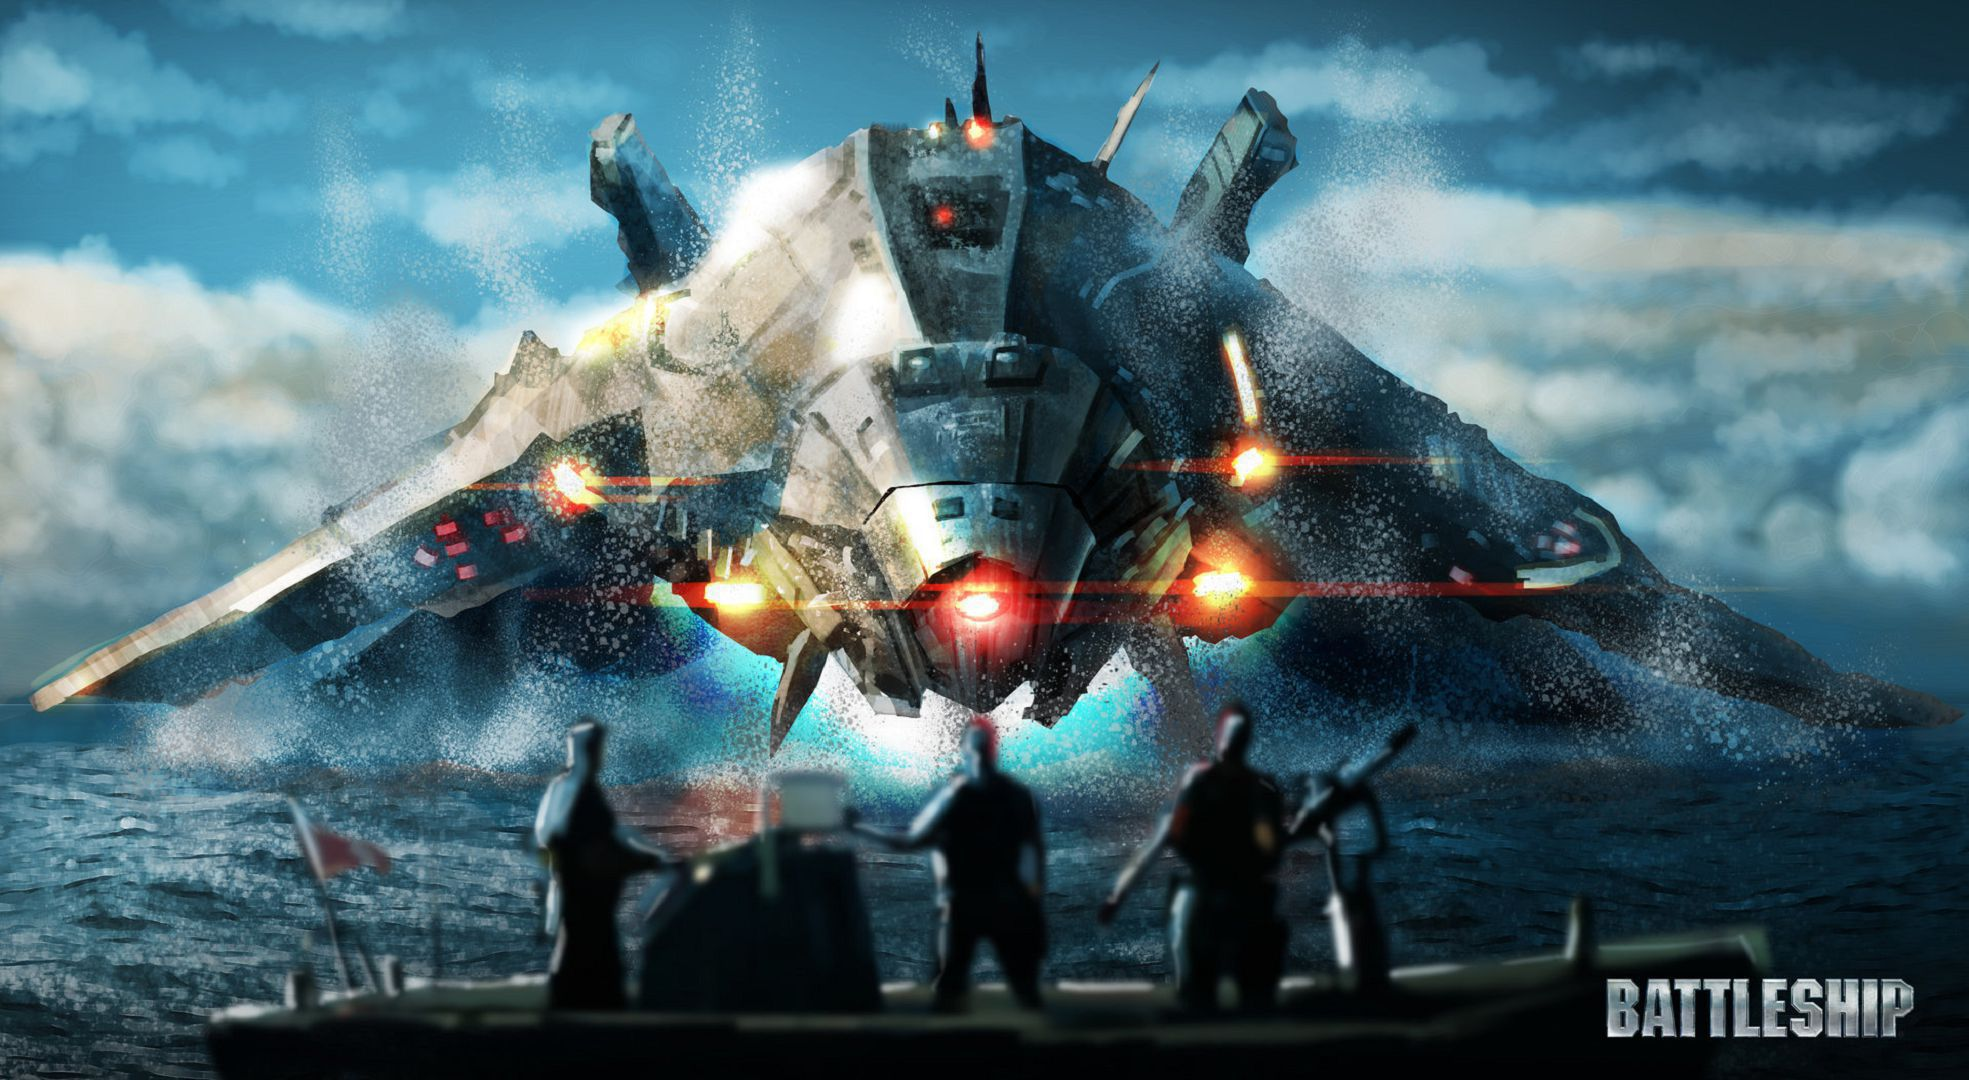 Battleship HD Wallpaper